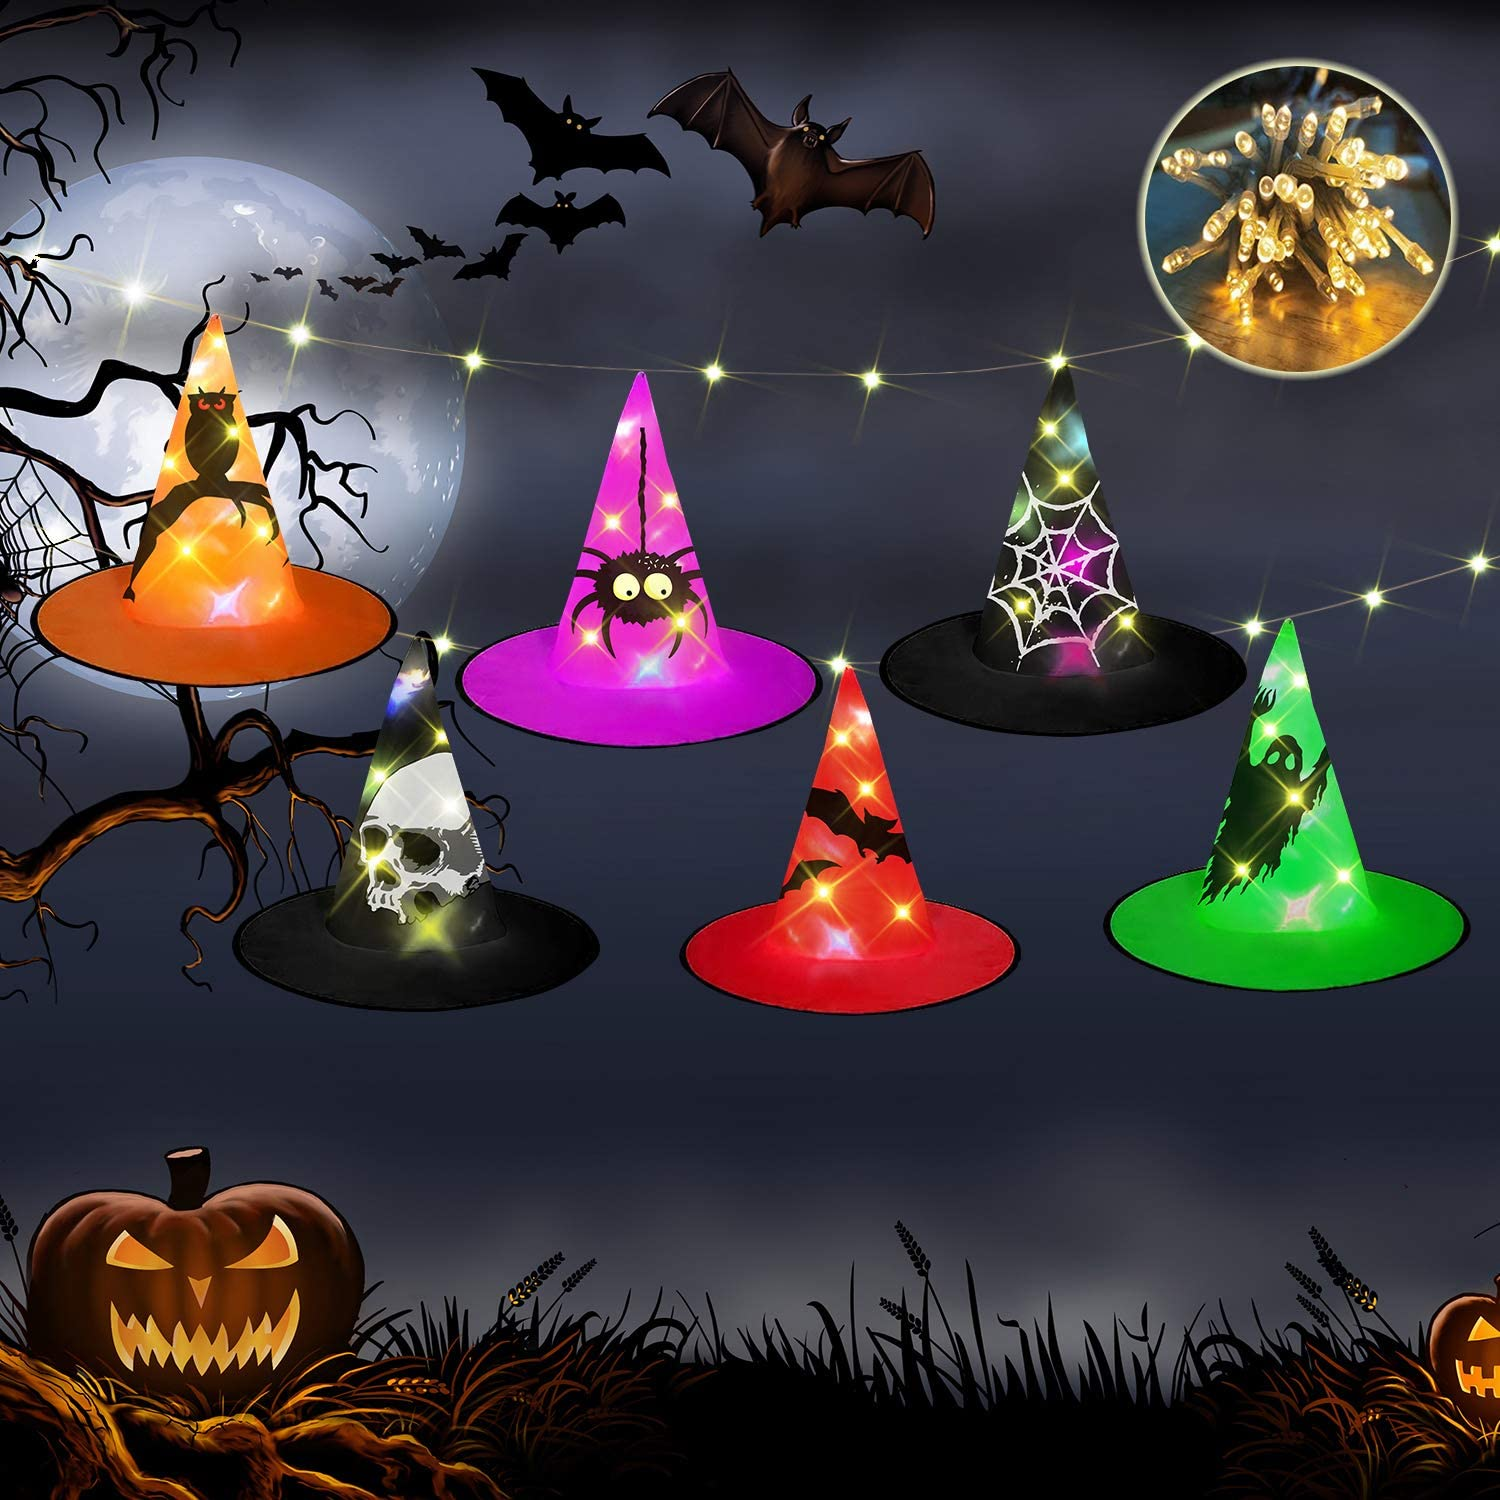 Halloween Decorations Witch Hats